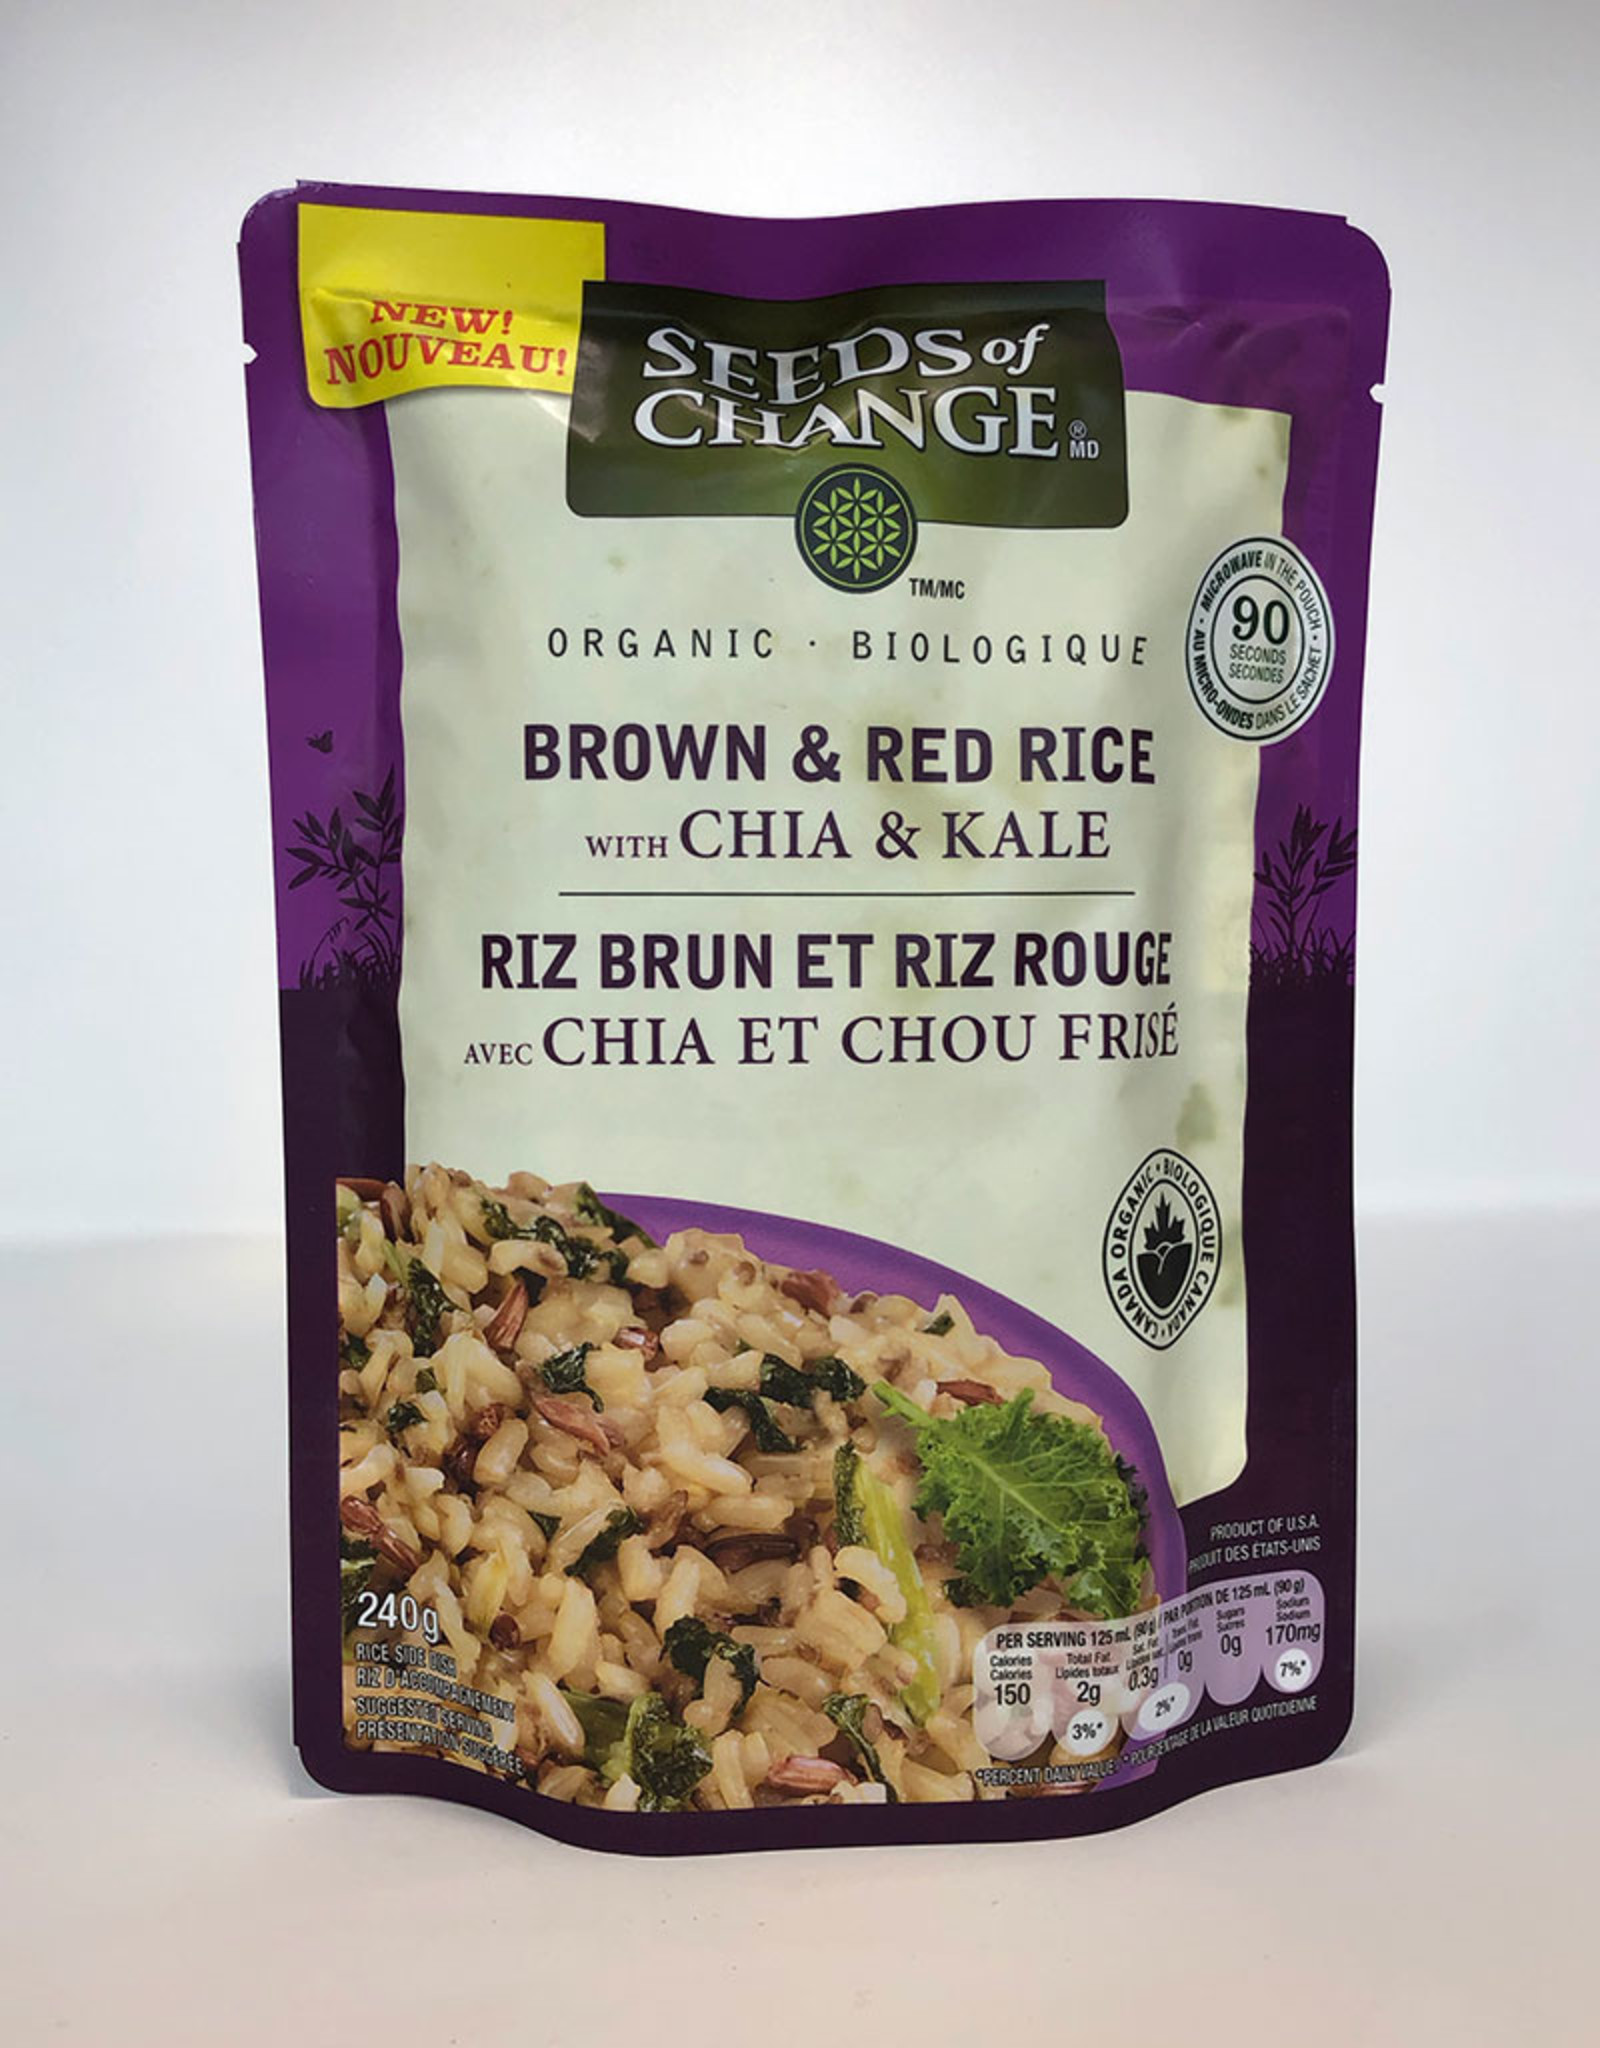 Seeds of Change Seeds of Change - Org. Rice Mix, Brown & Red Rice with Chia & Kale